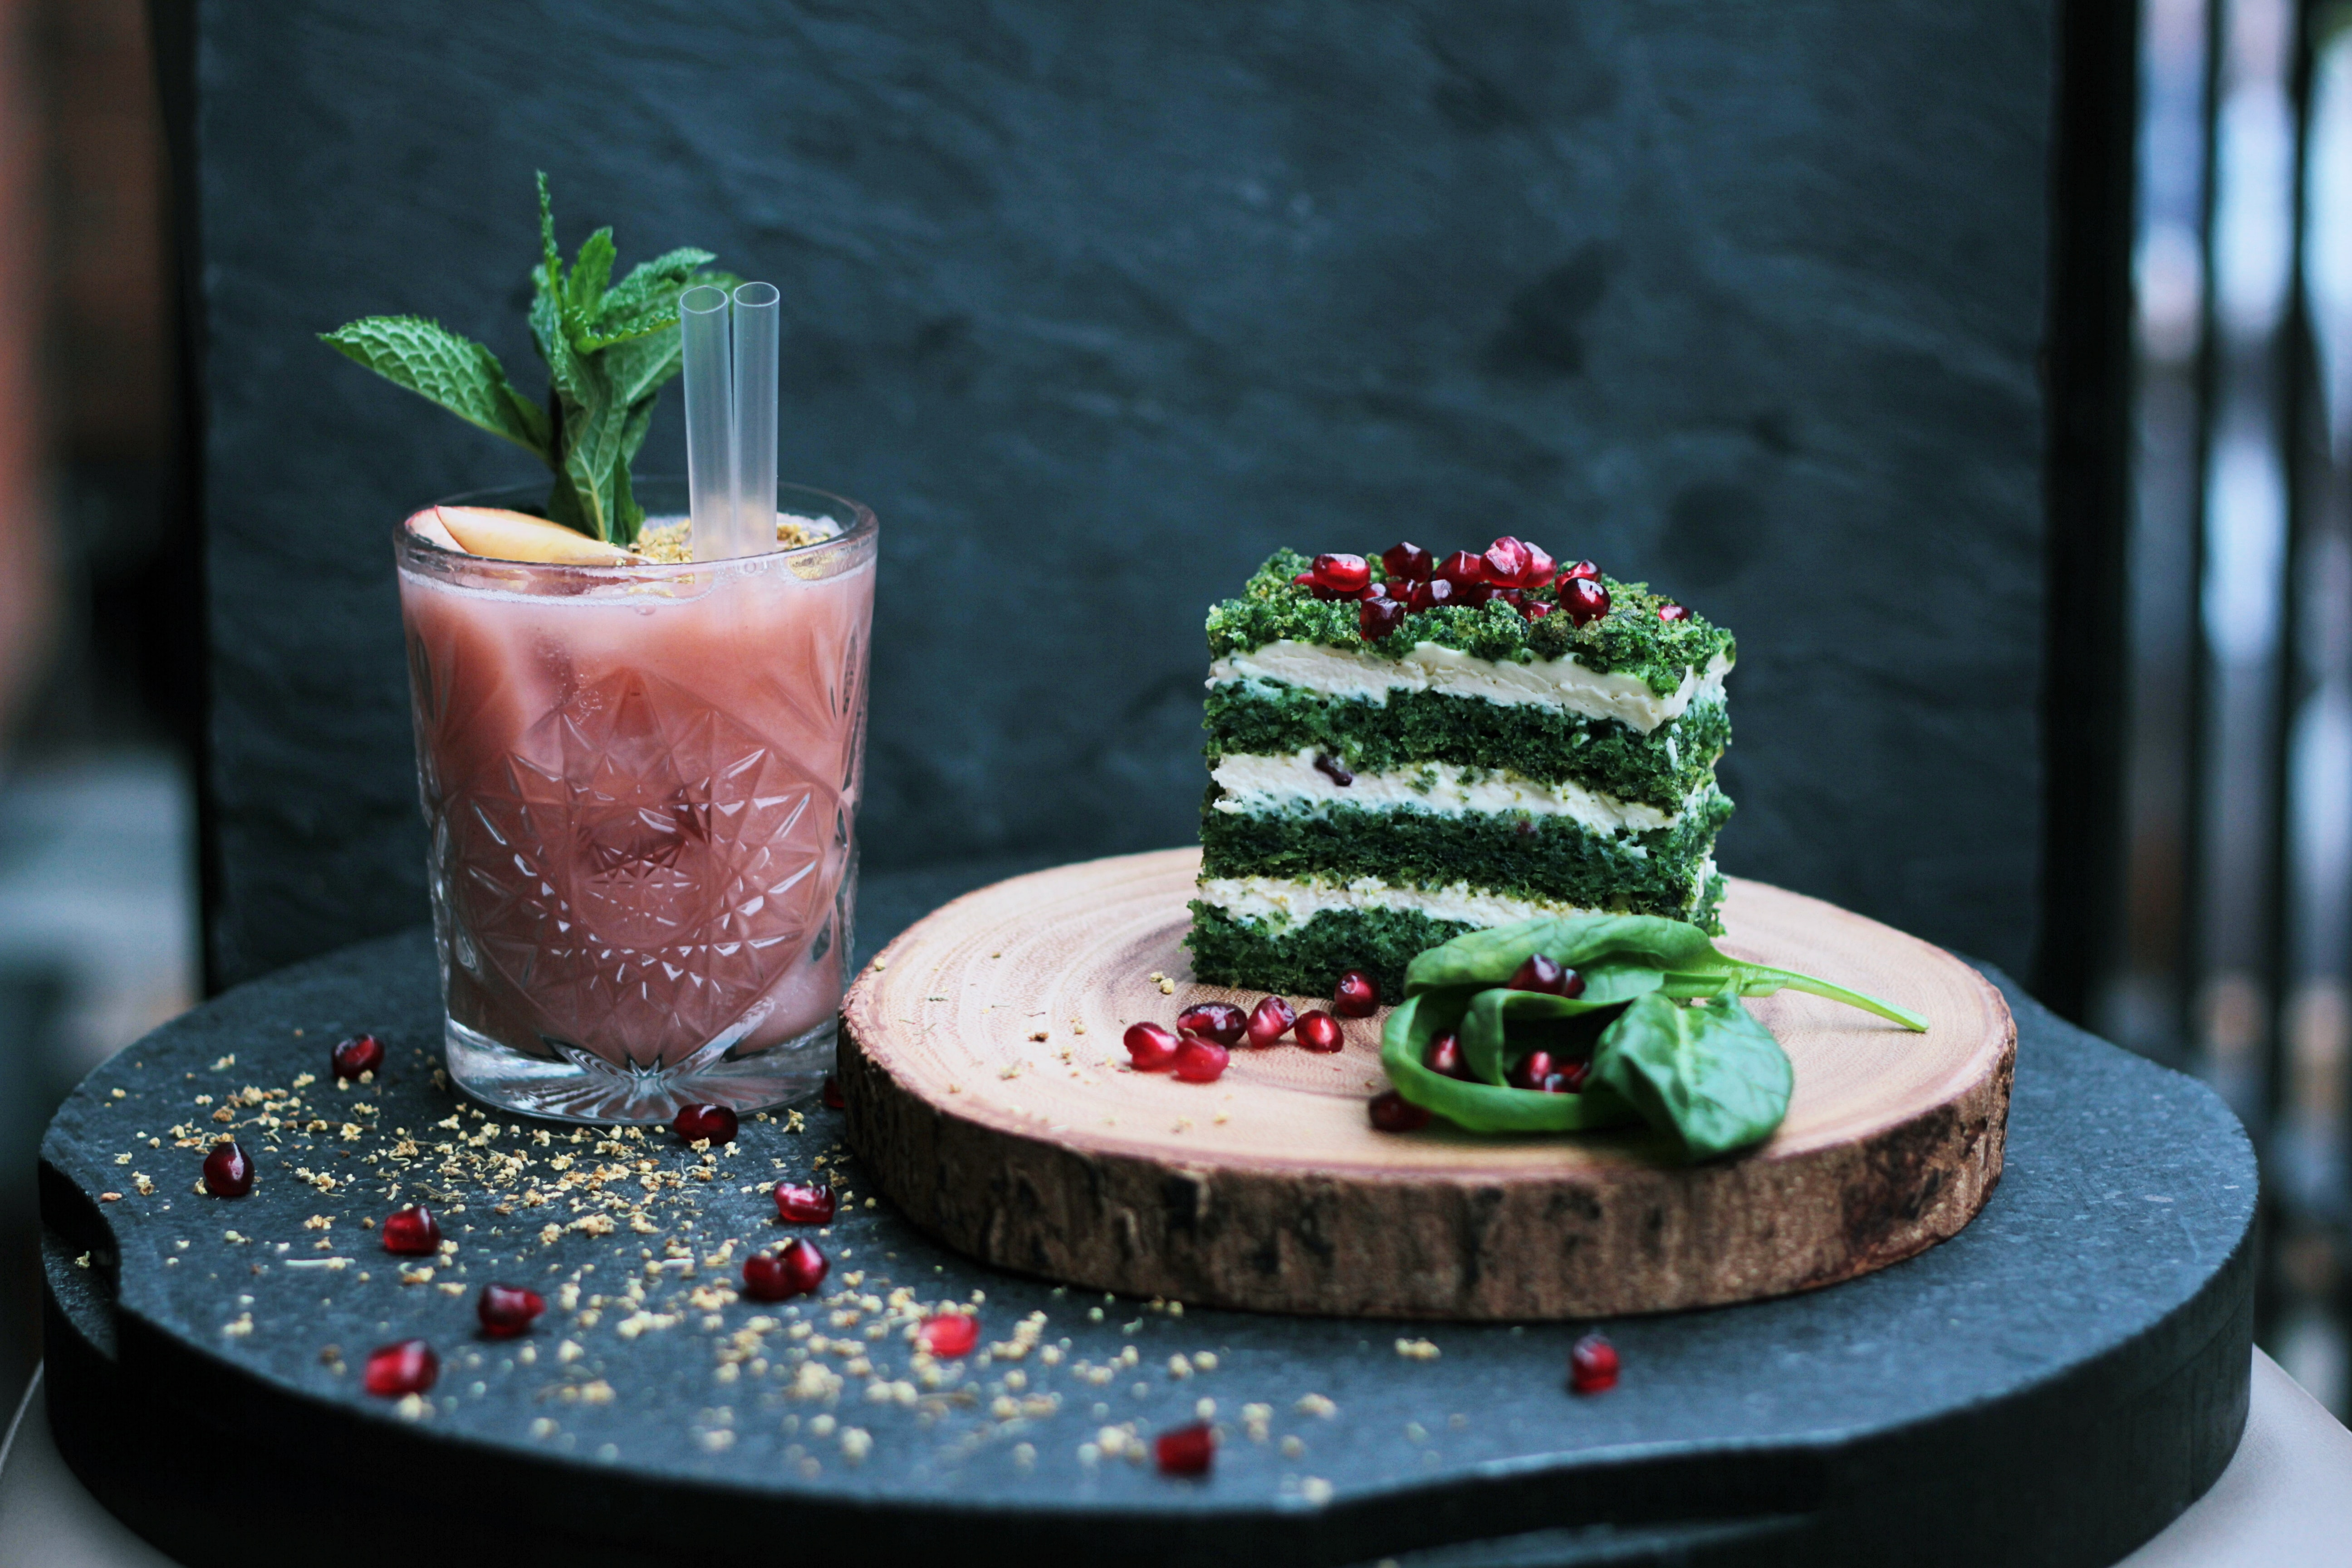 Photo of a red smoothie or juice and a green layered slice of cake, decorated with pomegranate seeds